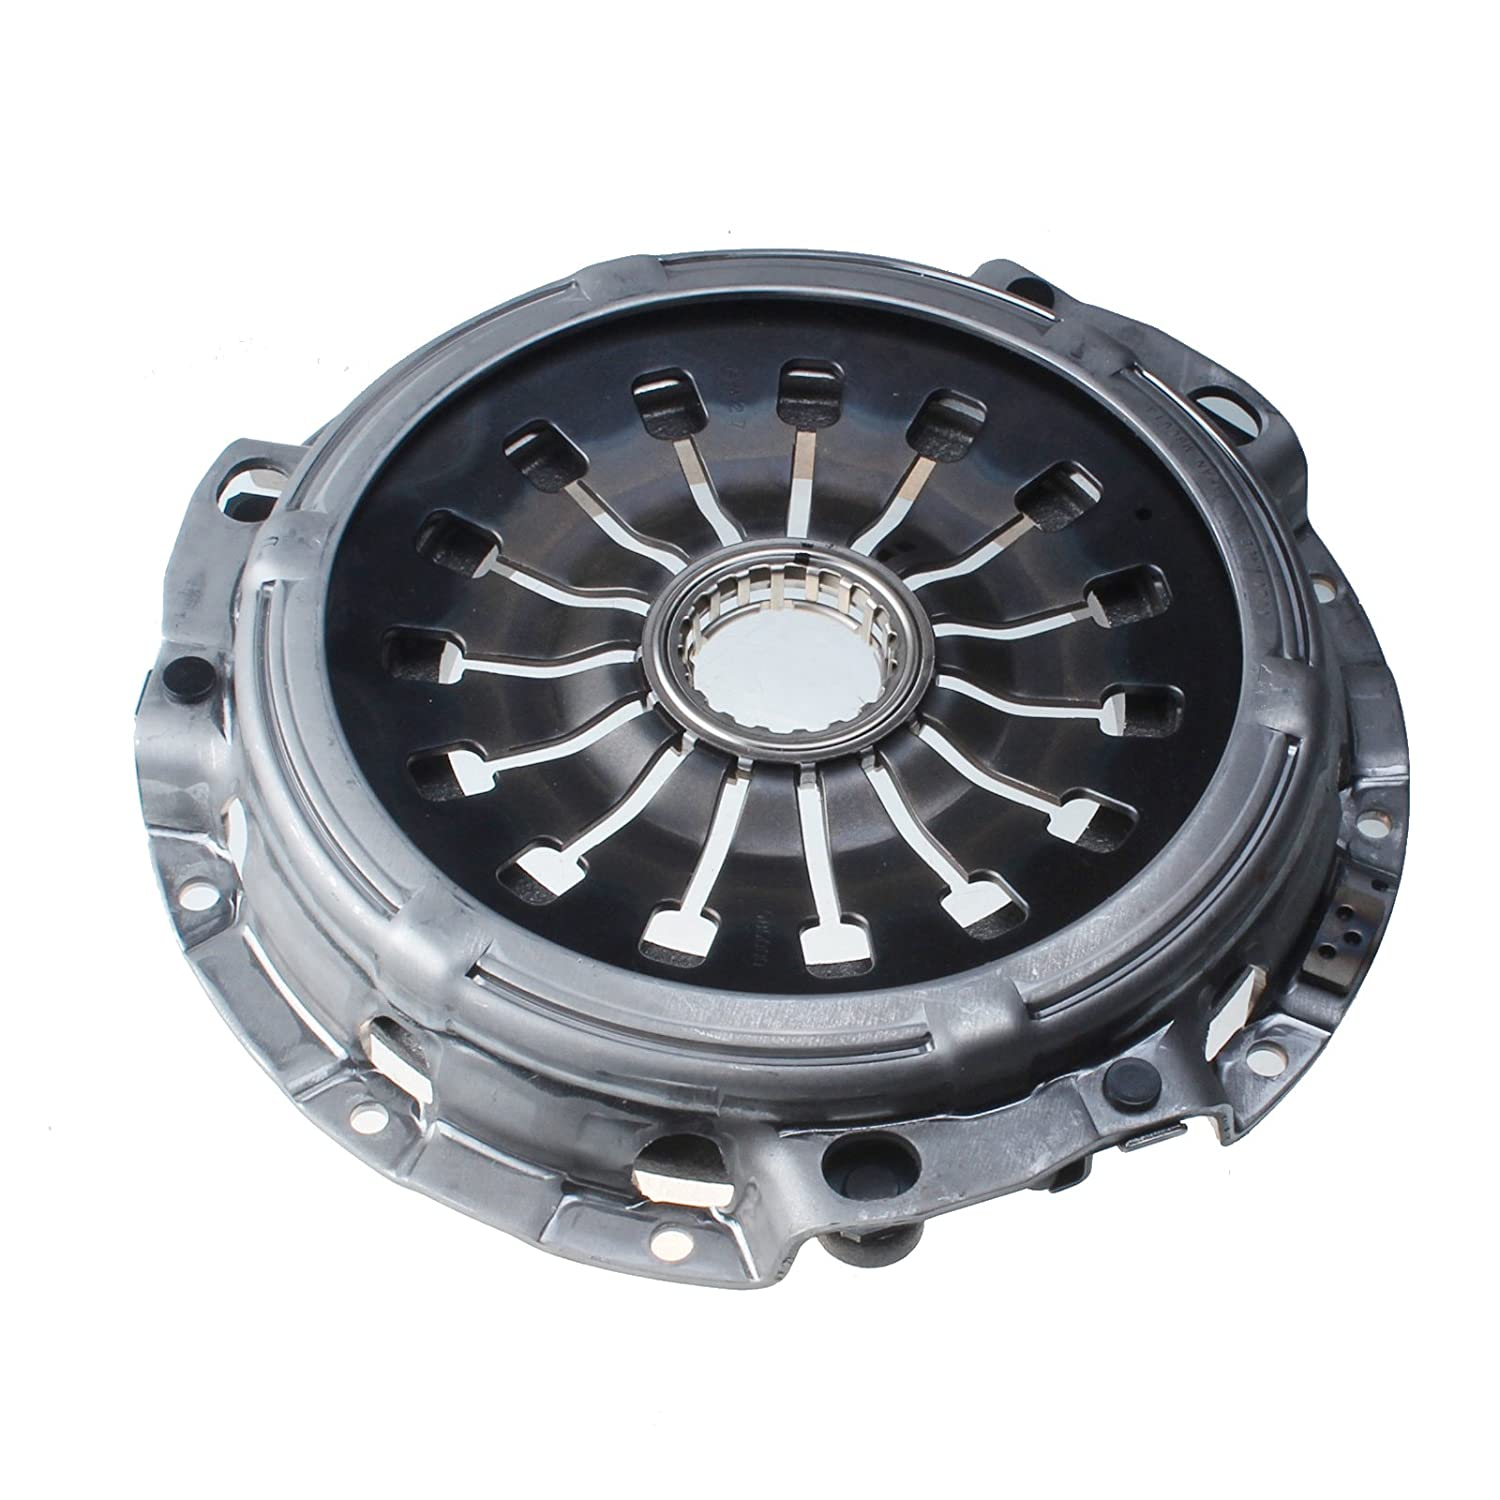 Amazon.com: Holdwell Auto Clutch Kit for Mitsubishi Montero Pajero V26 V36 V46 4M40 Engine: Automotive